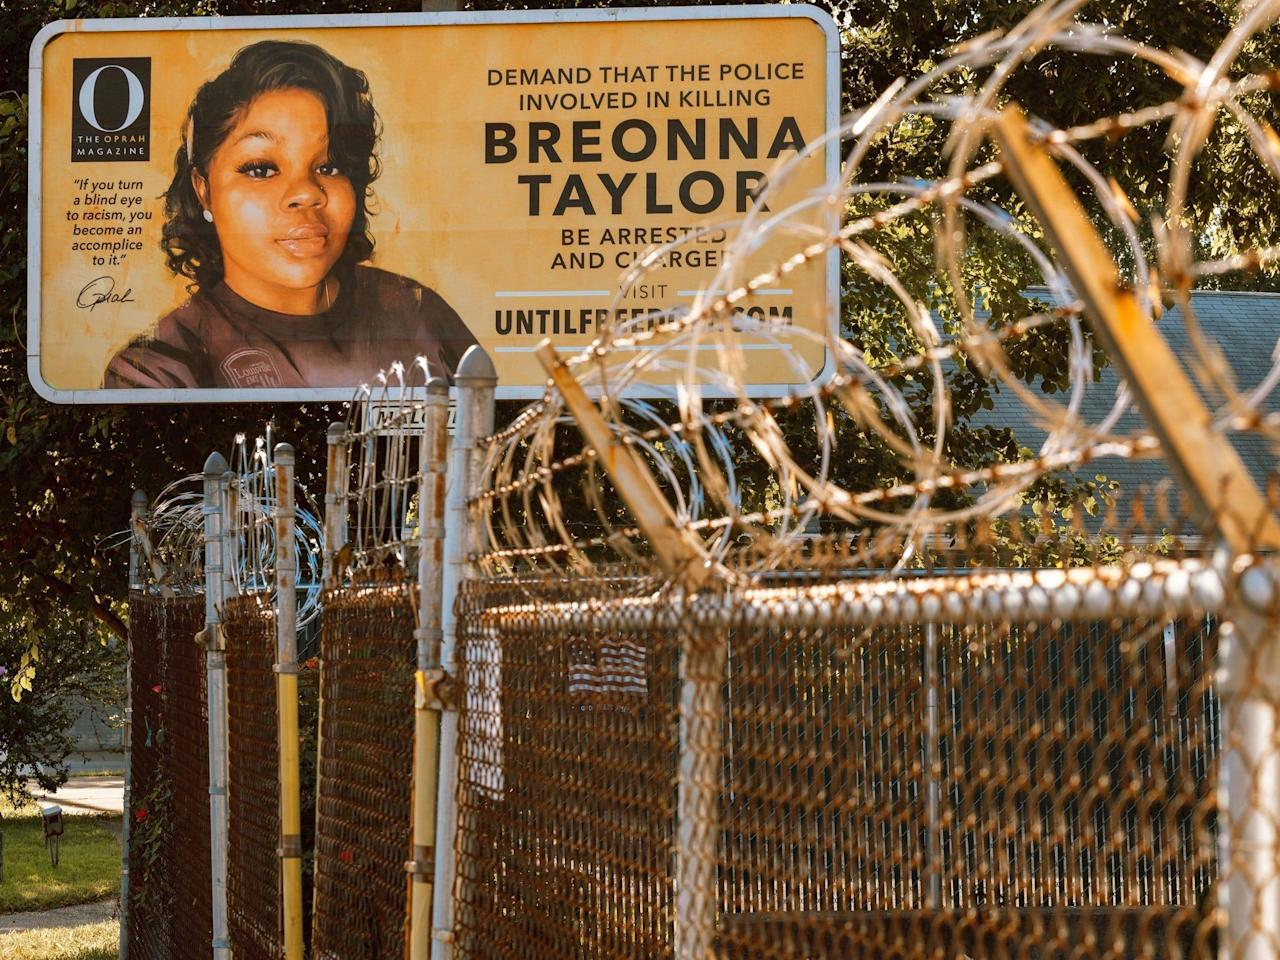 Member of the grand jury breaks silence on Breonna Taylor case, says they weren't given the chance to indict any officer for homicide